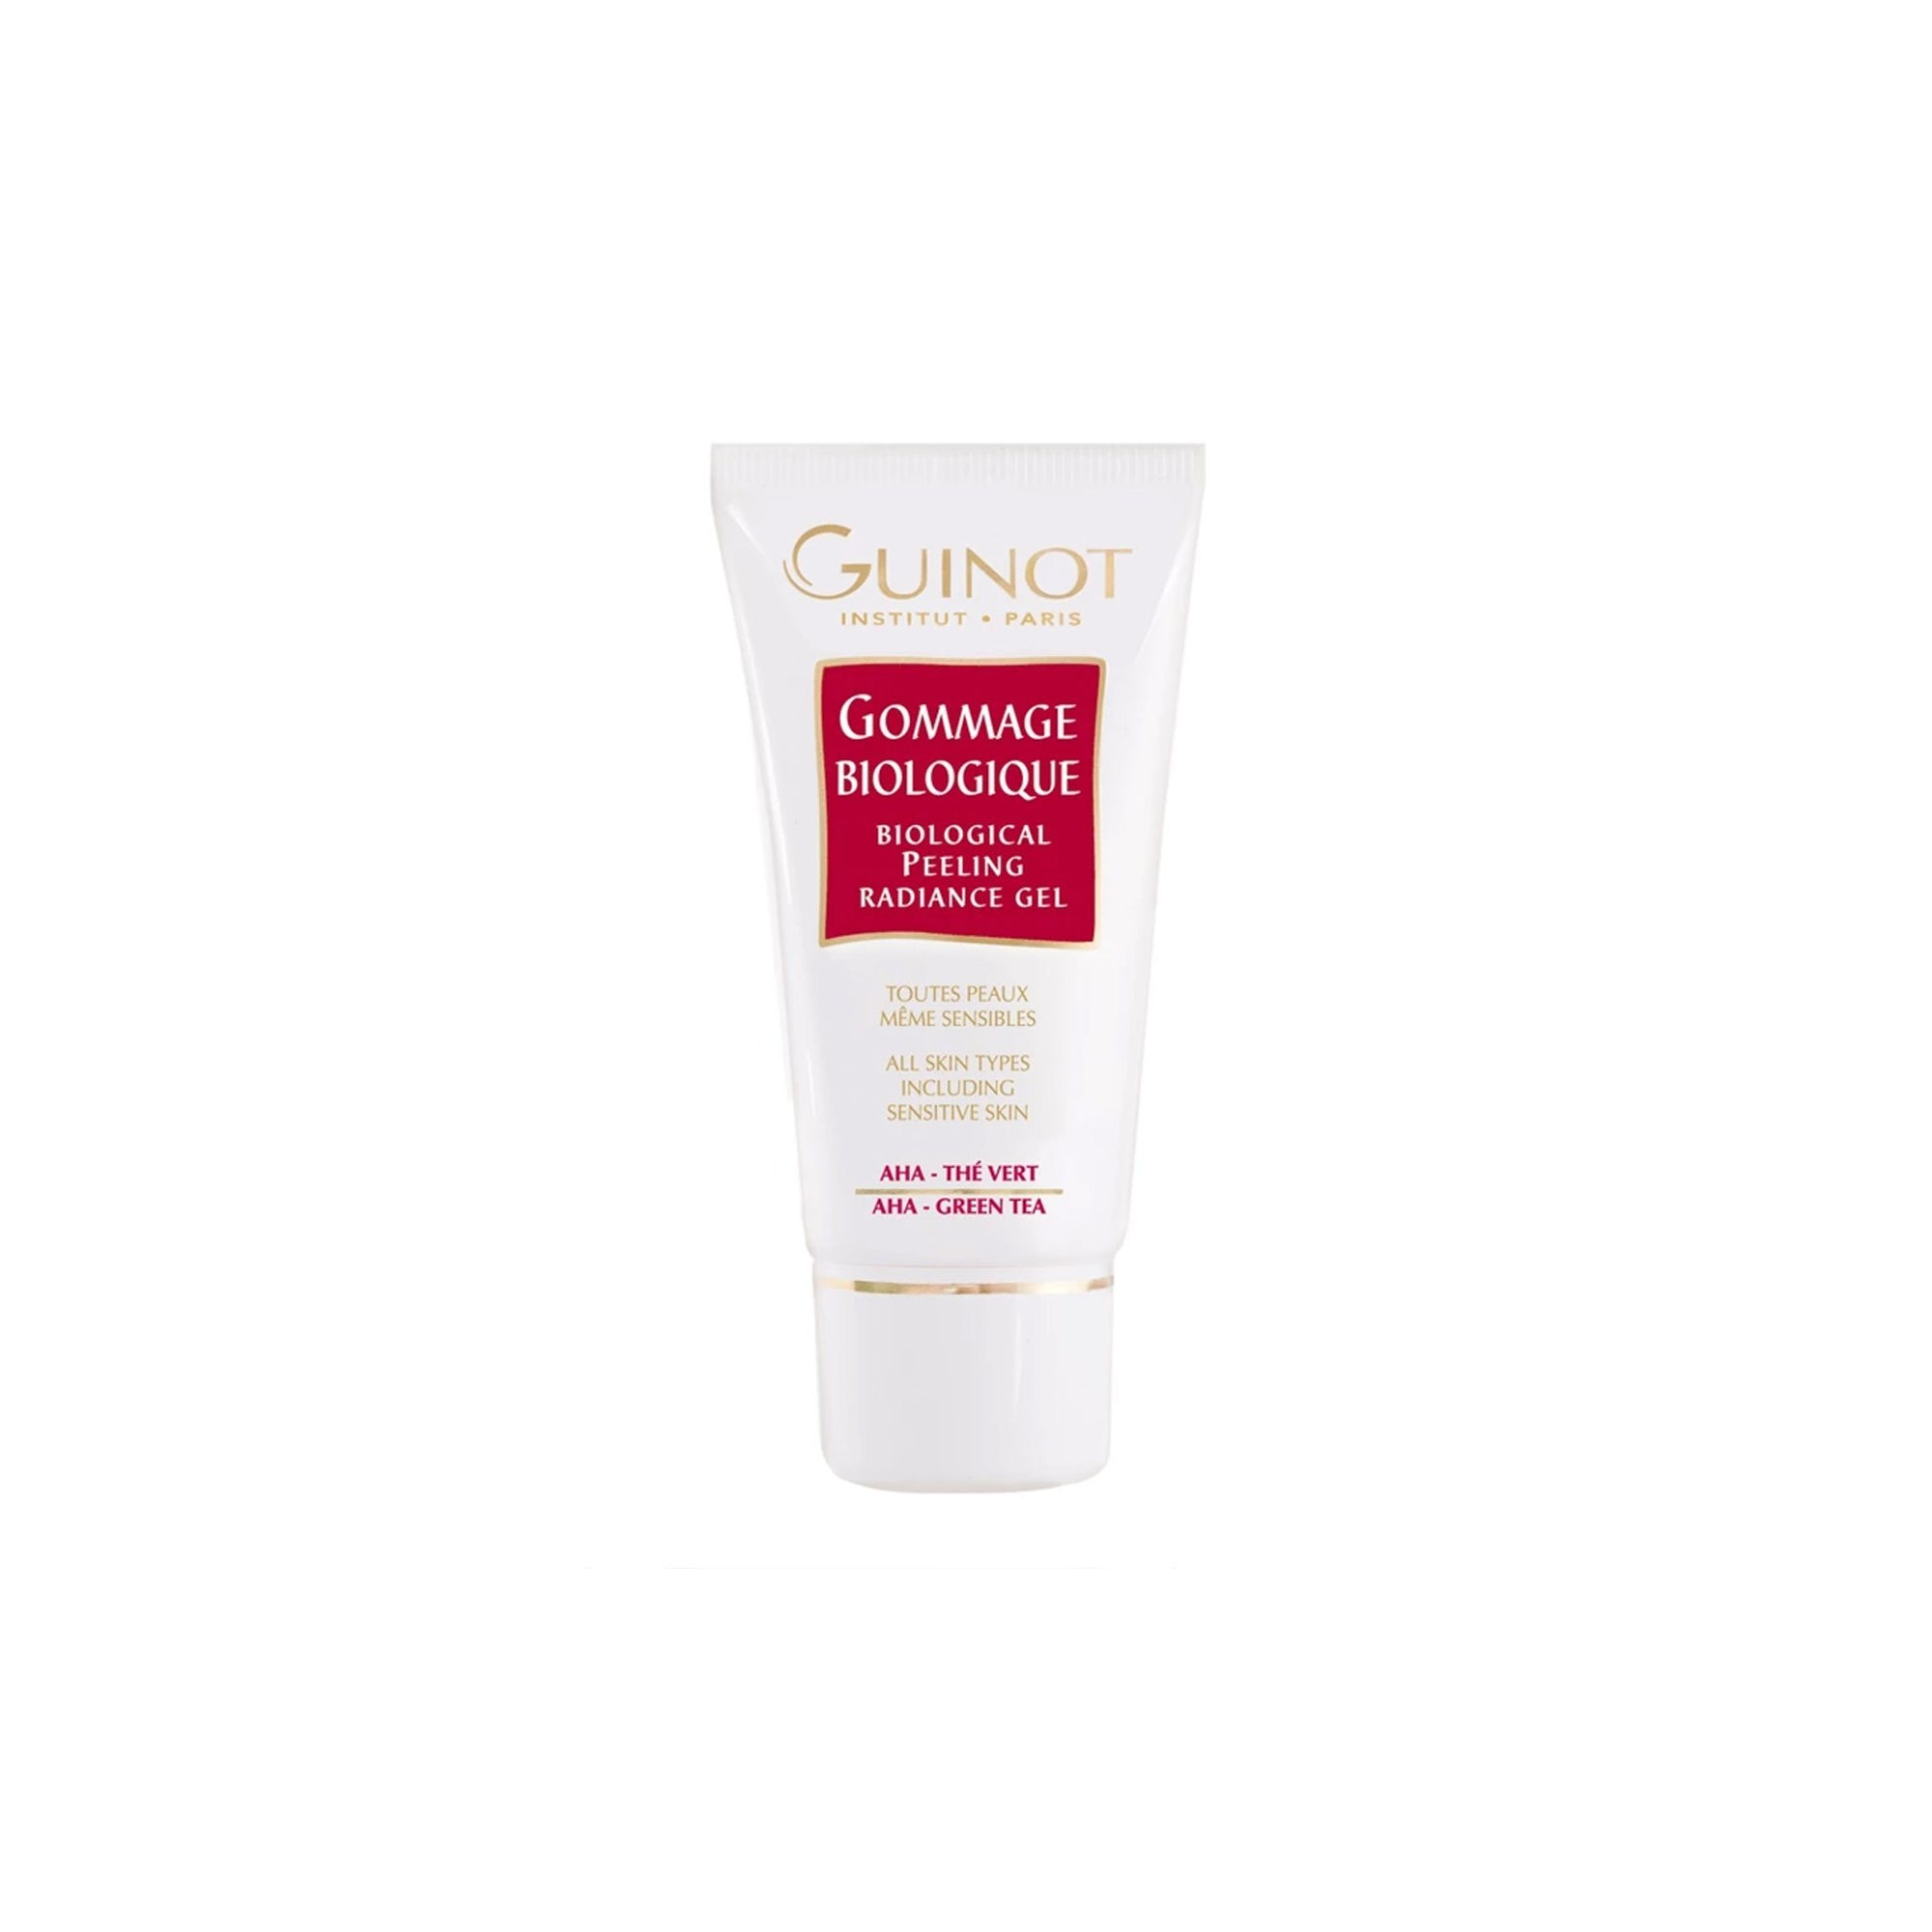 Guinot Biological Peeling Radiance Gel 50ml